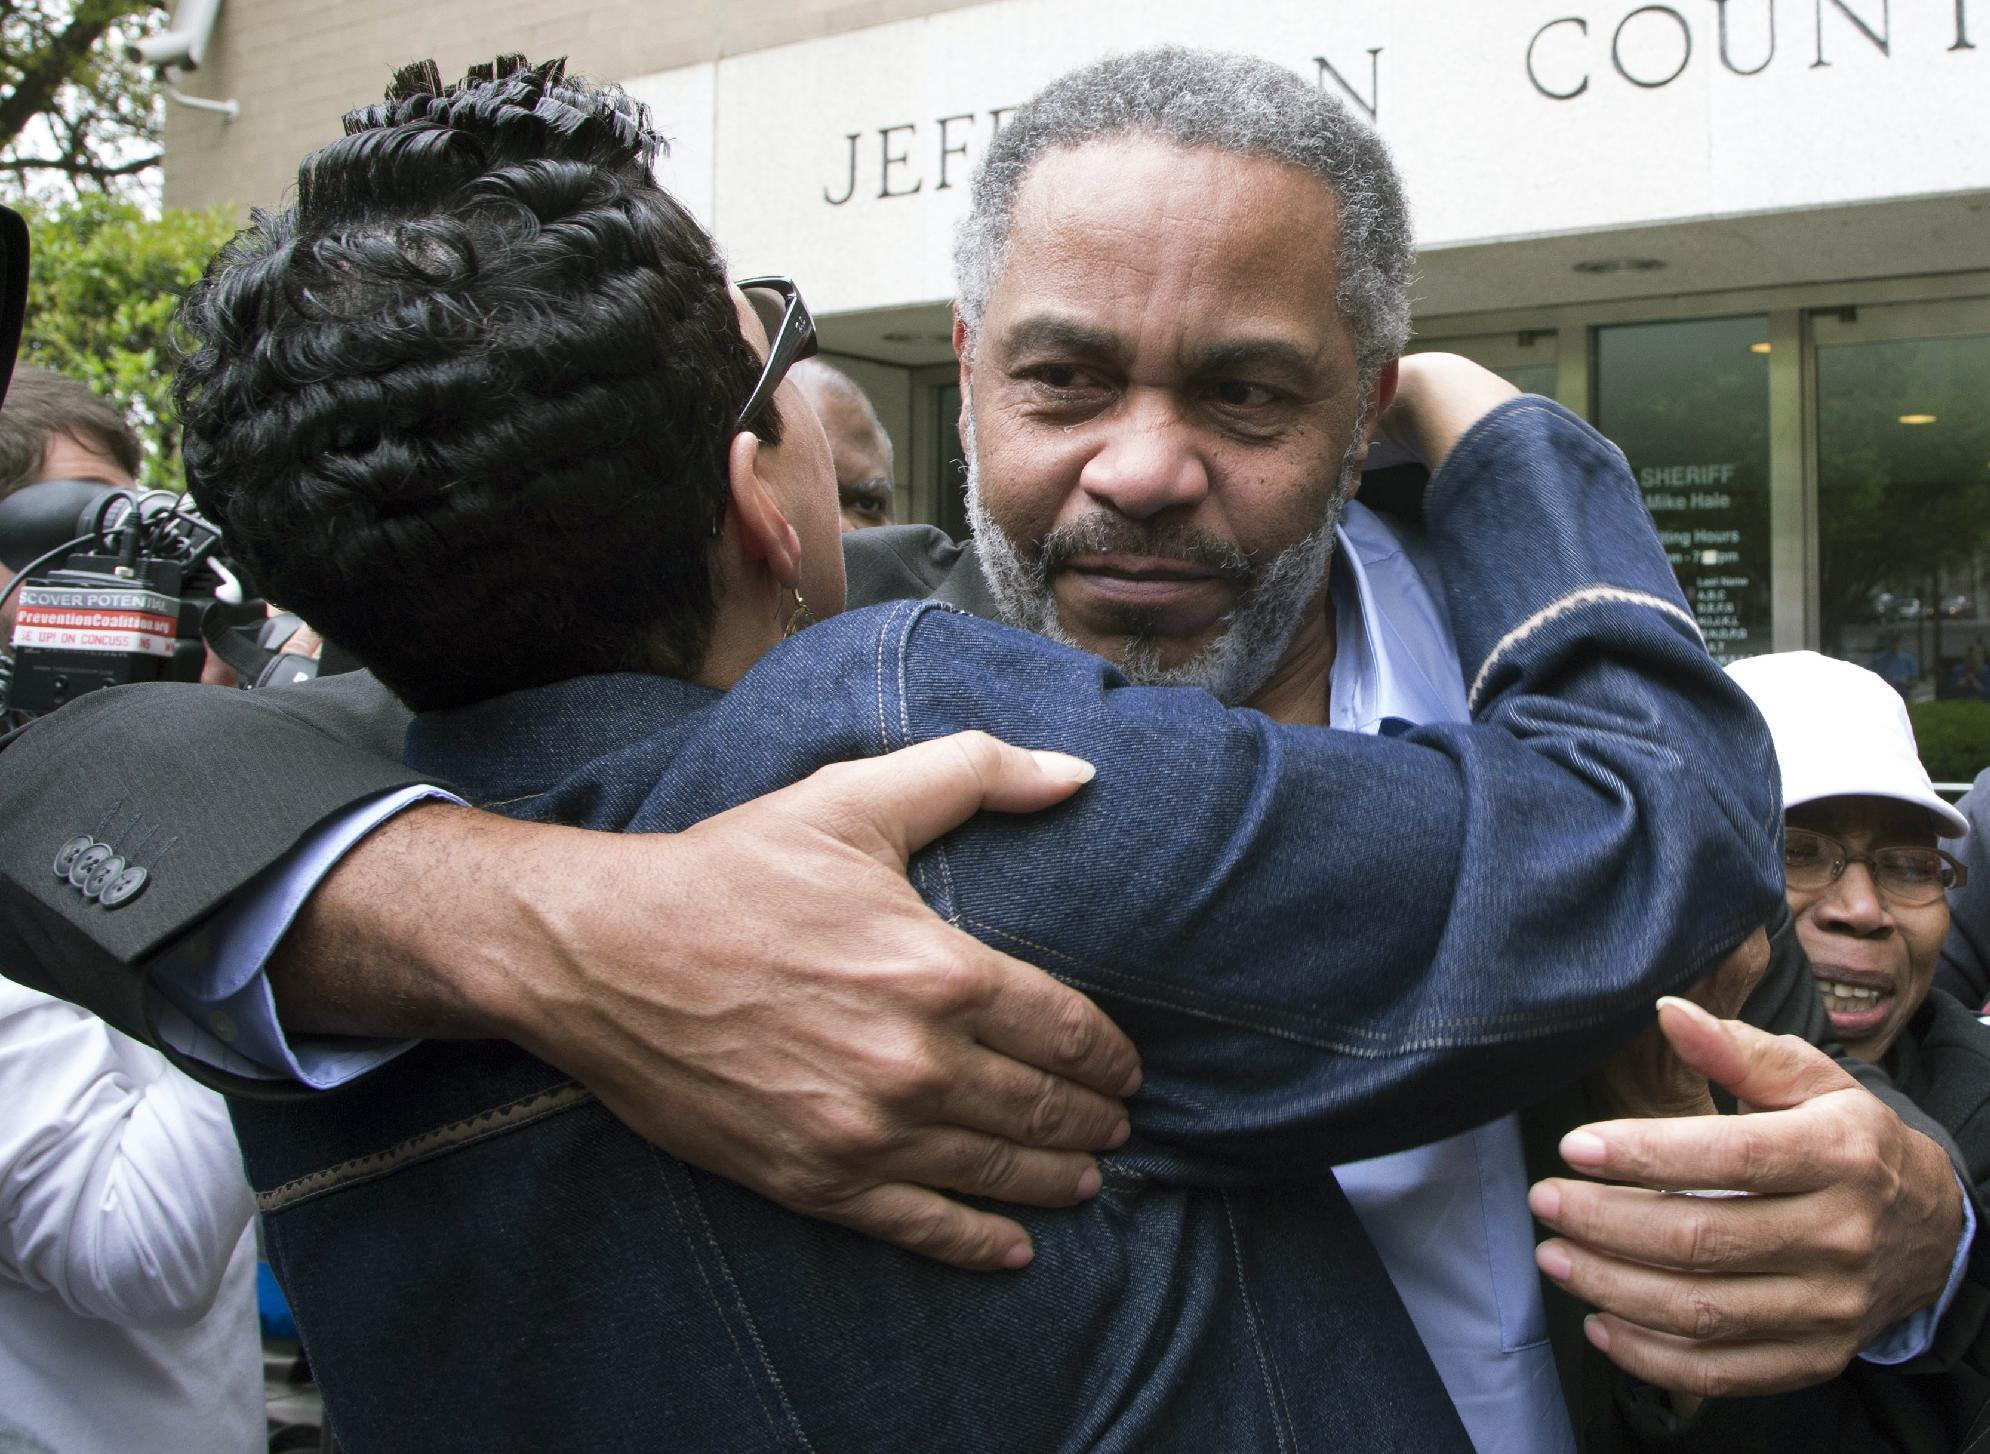 Freed from death row: 'I refuse to give them my joy'